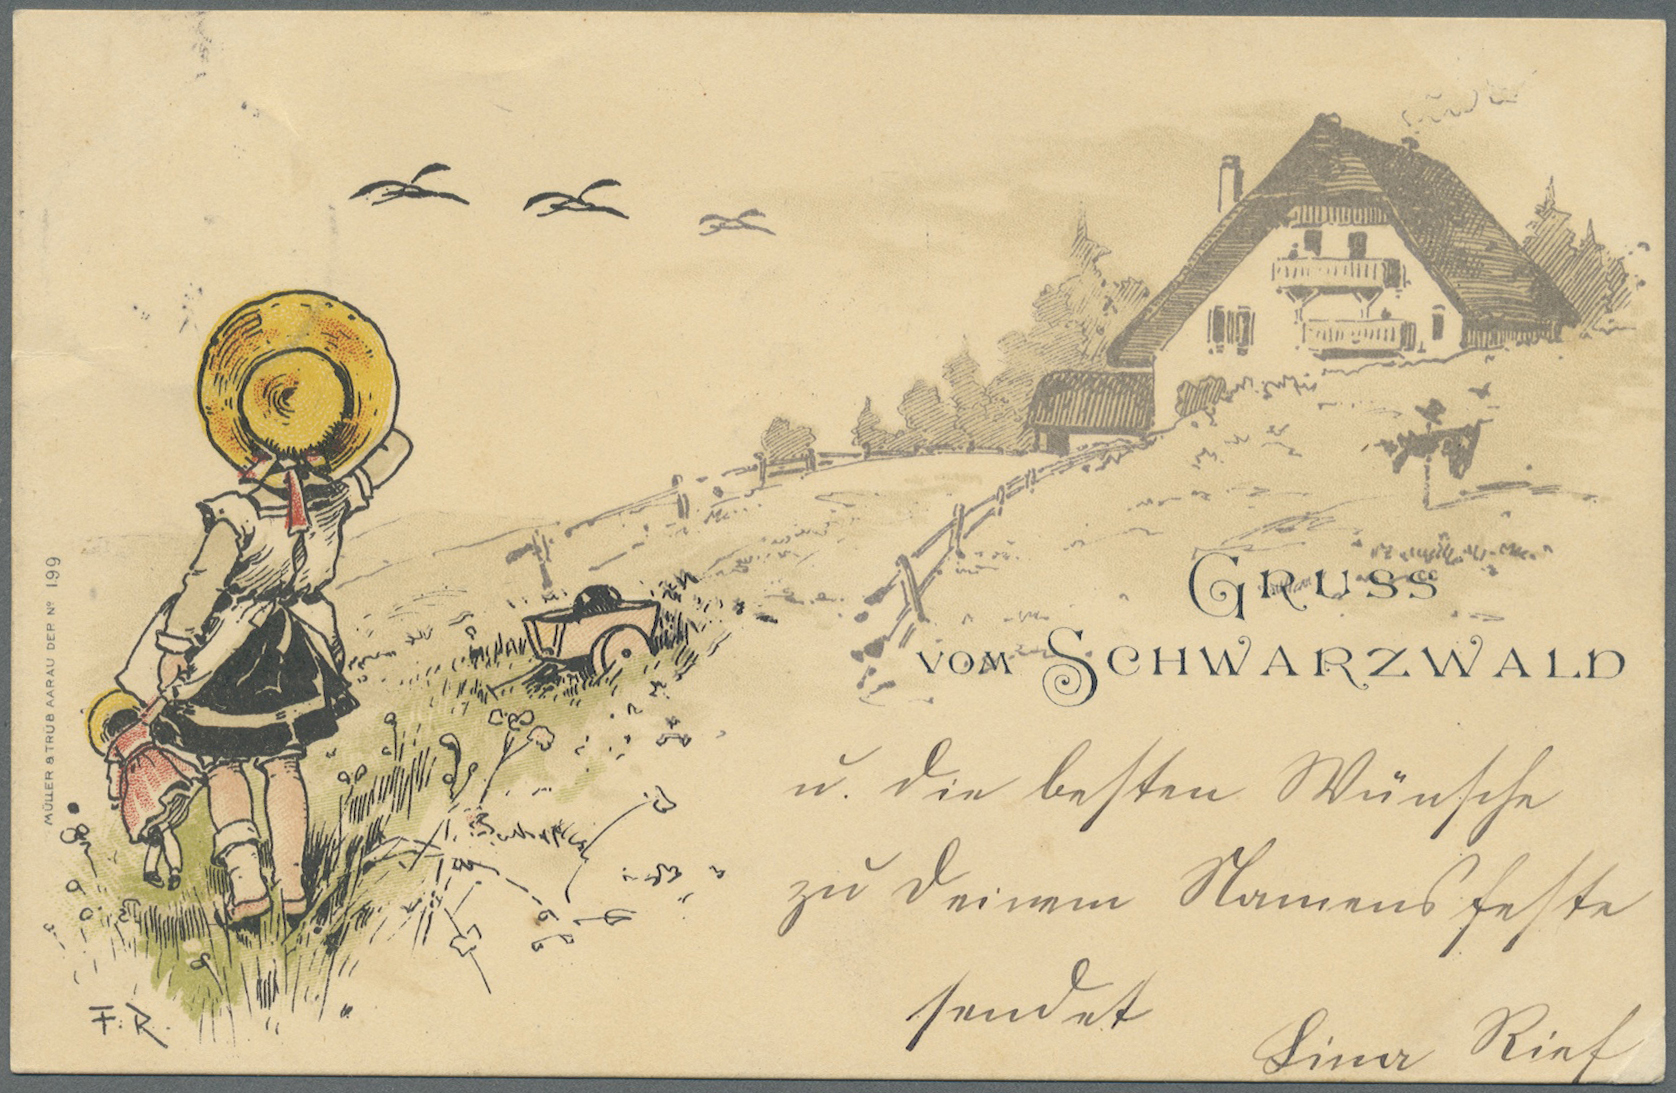 Lot 34002 - nachlässe  -  Auktionshaus Christoph Gärtner GmbH & Co. KG Collections Germany,  Collections Supplement, Surprise boxes #39 Day 7